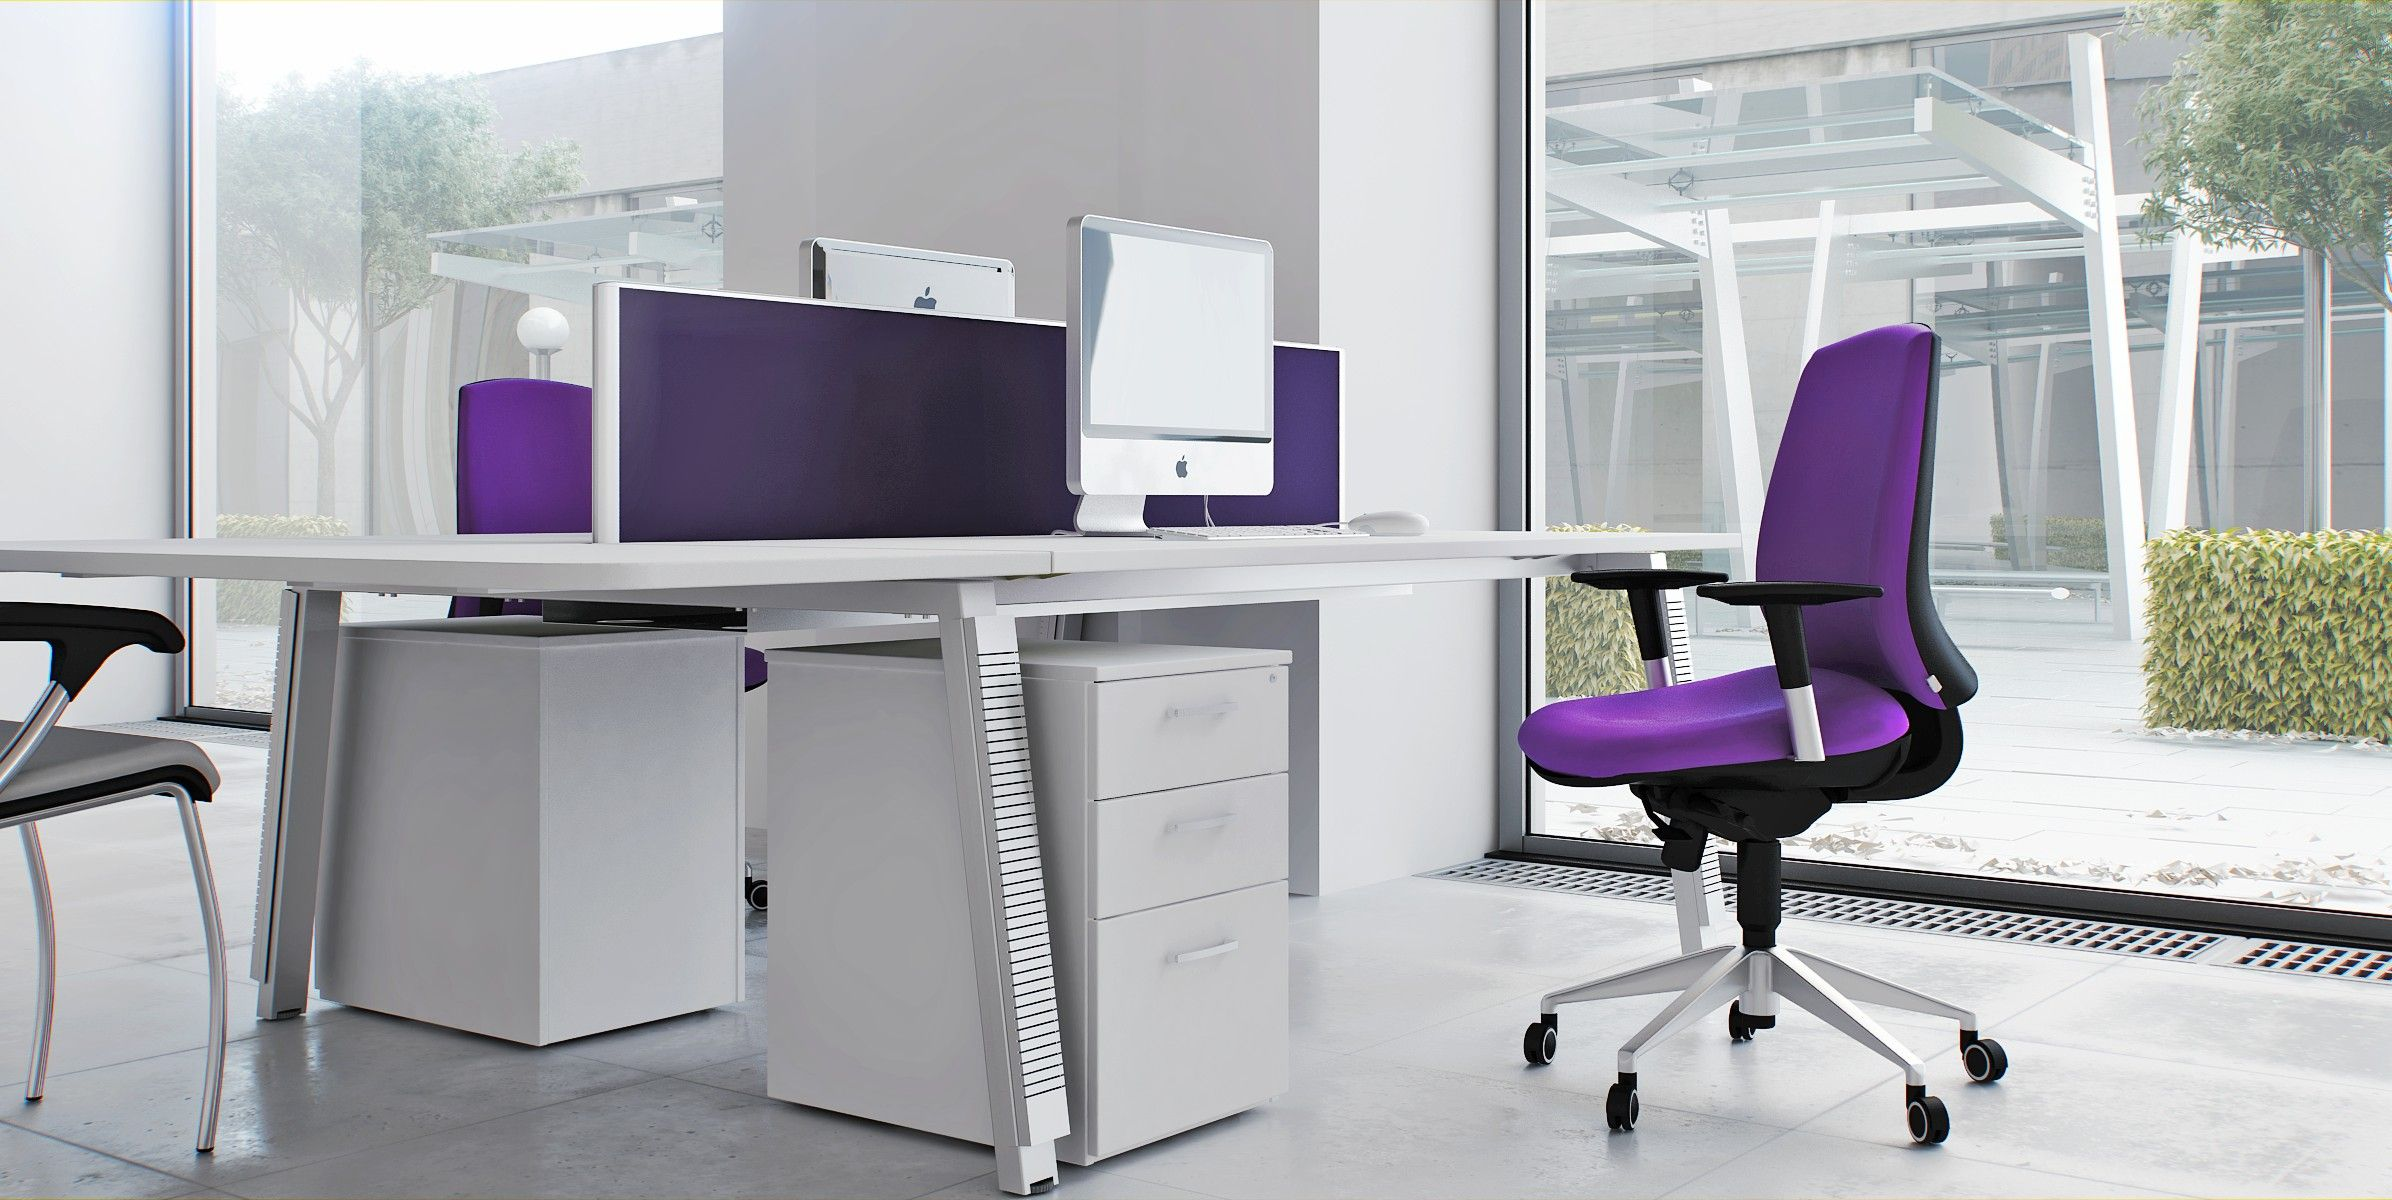 Captivating Modern Office Chair With Soft Purple Fabric